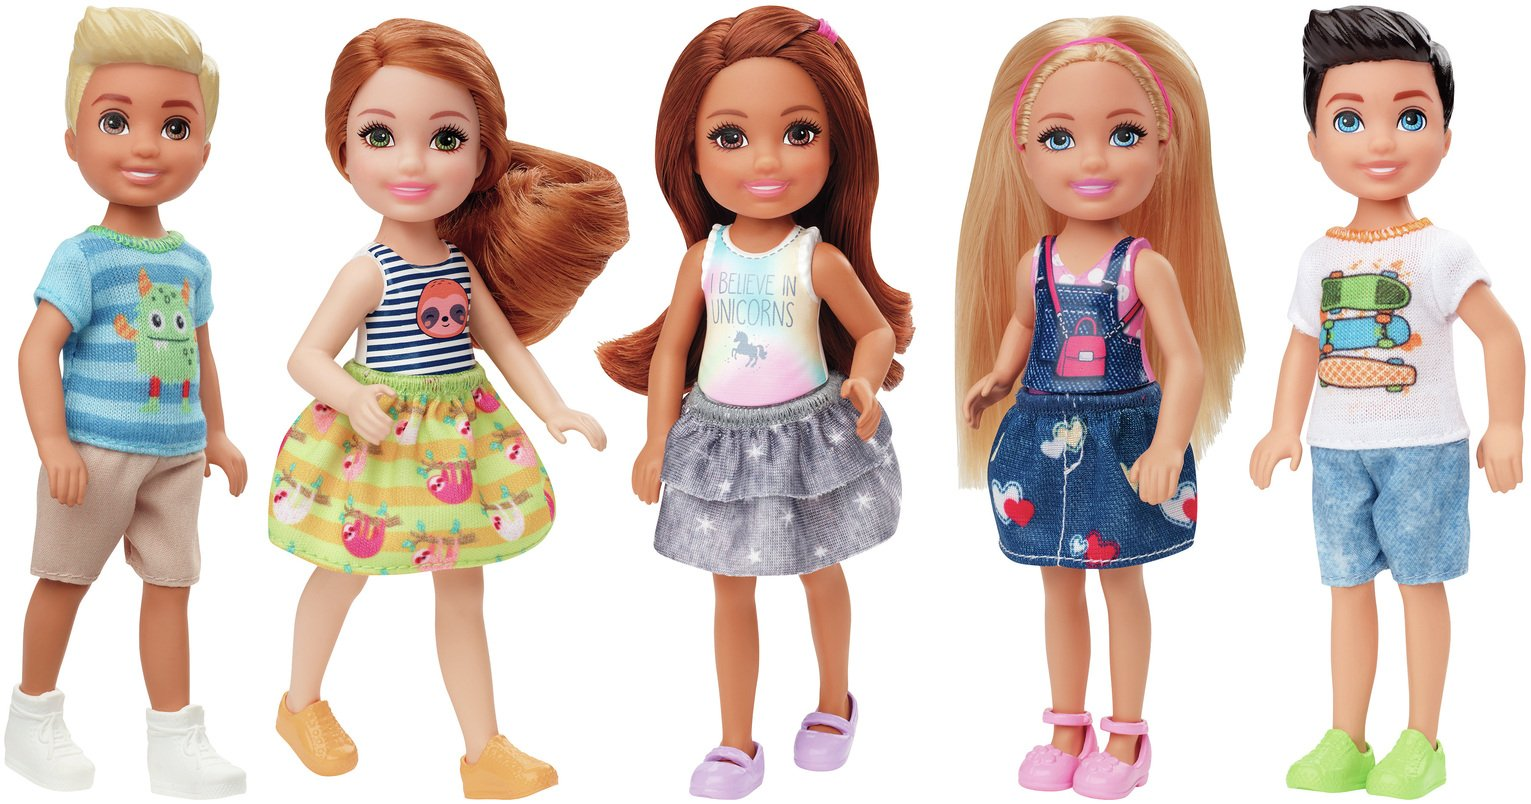 Barbie Club Chelsea 2 Pack Dolls & Accessories Assortment